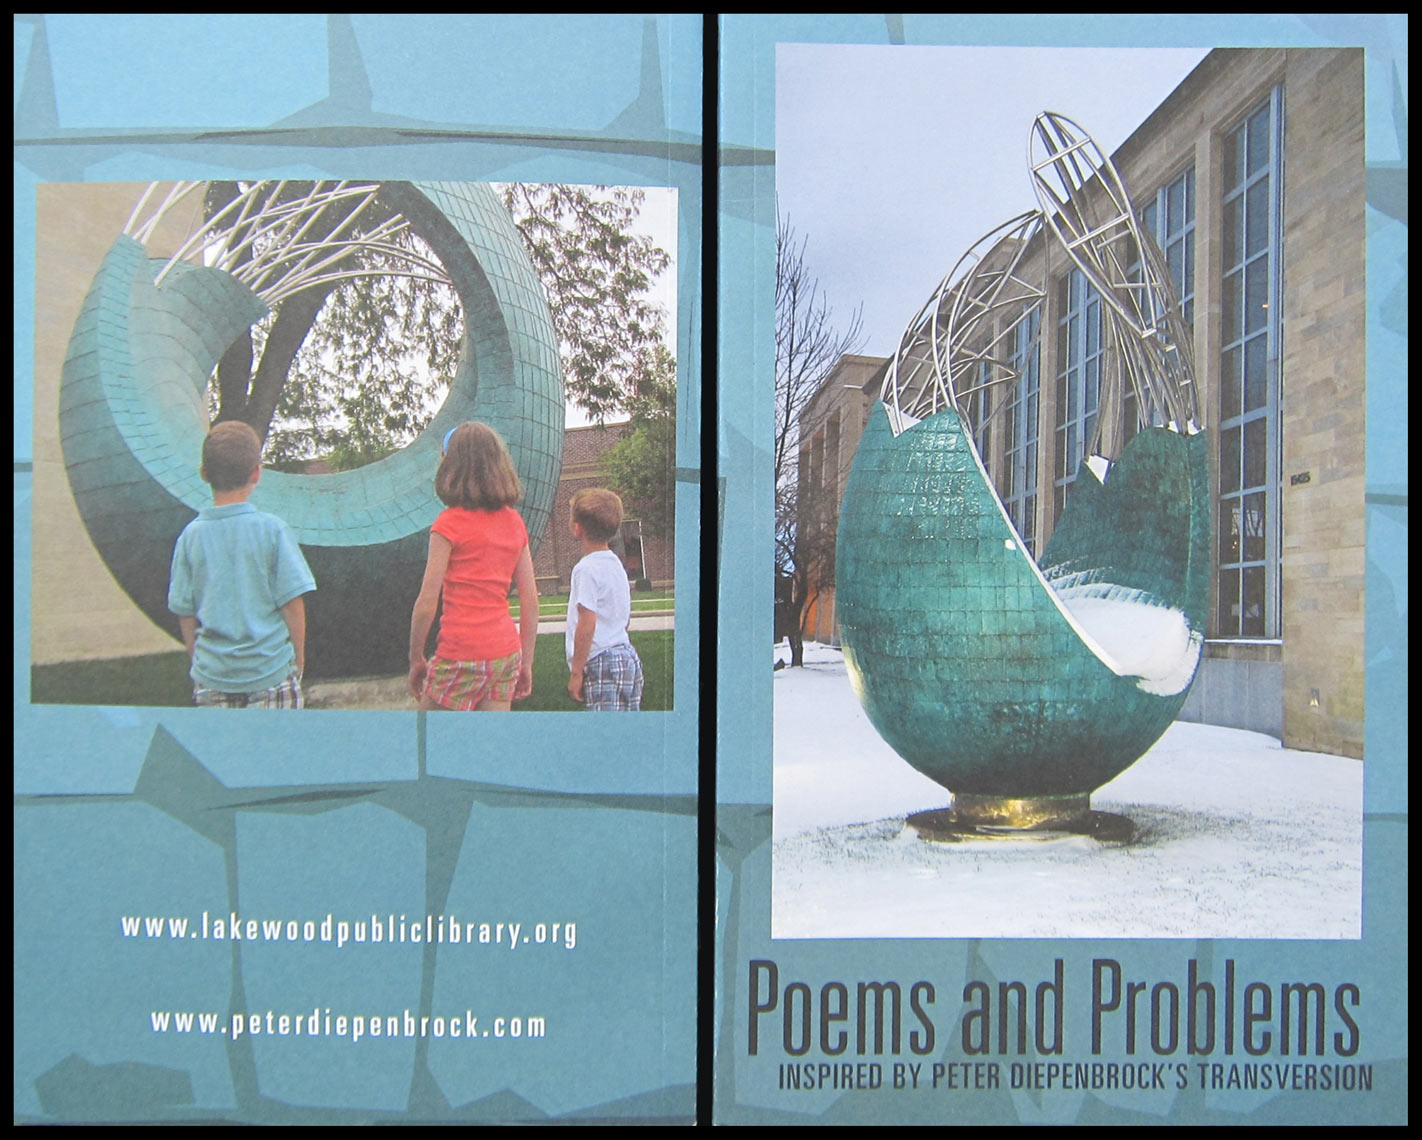 Lakewood Public library Publication featuring Transversion by Peter Diepenbrock